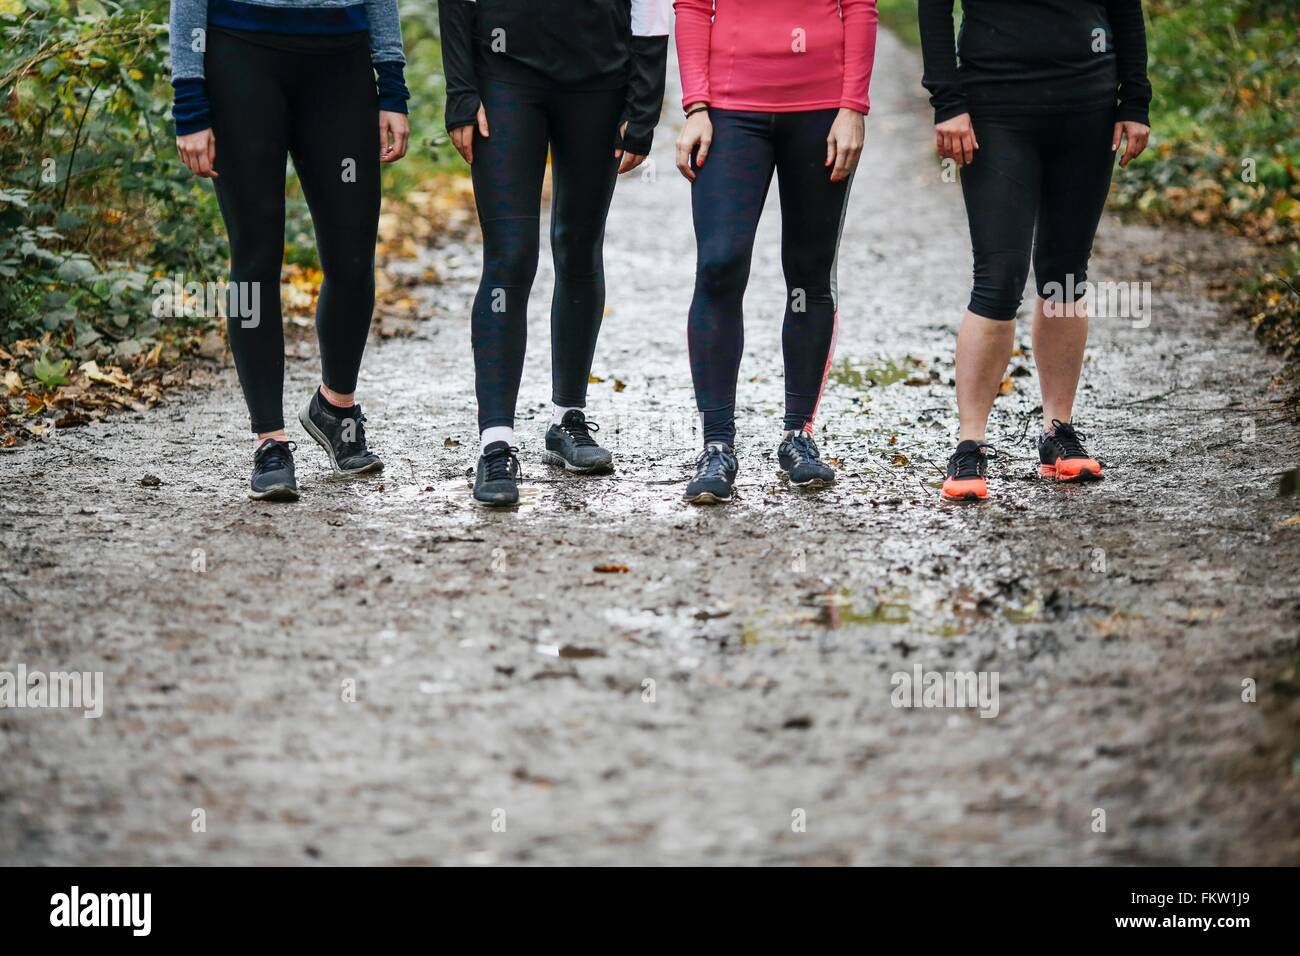 Waist down of teenage girl and women runners preparing to run in park Stock Photo